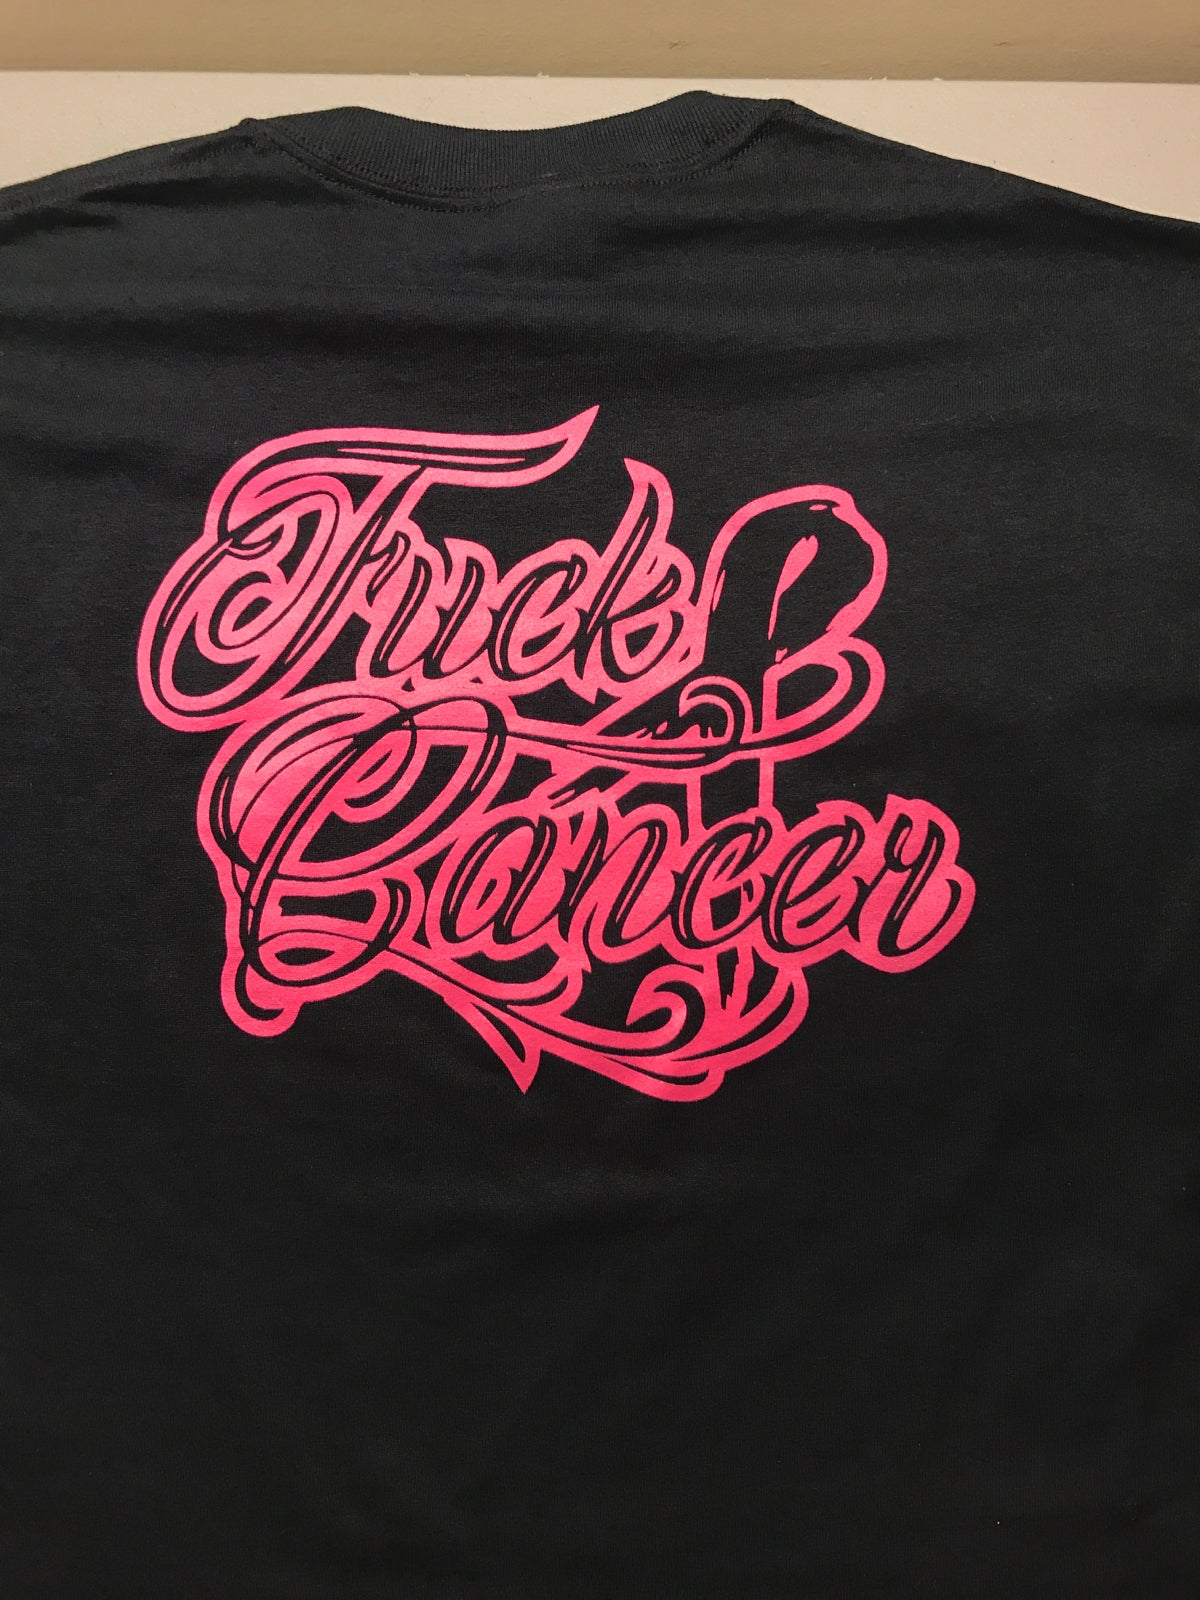 Image of F#ck cancer t-shirt